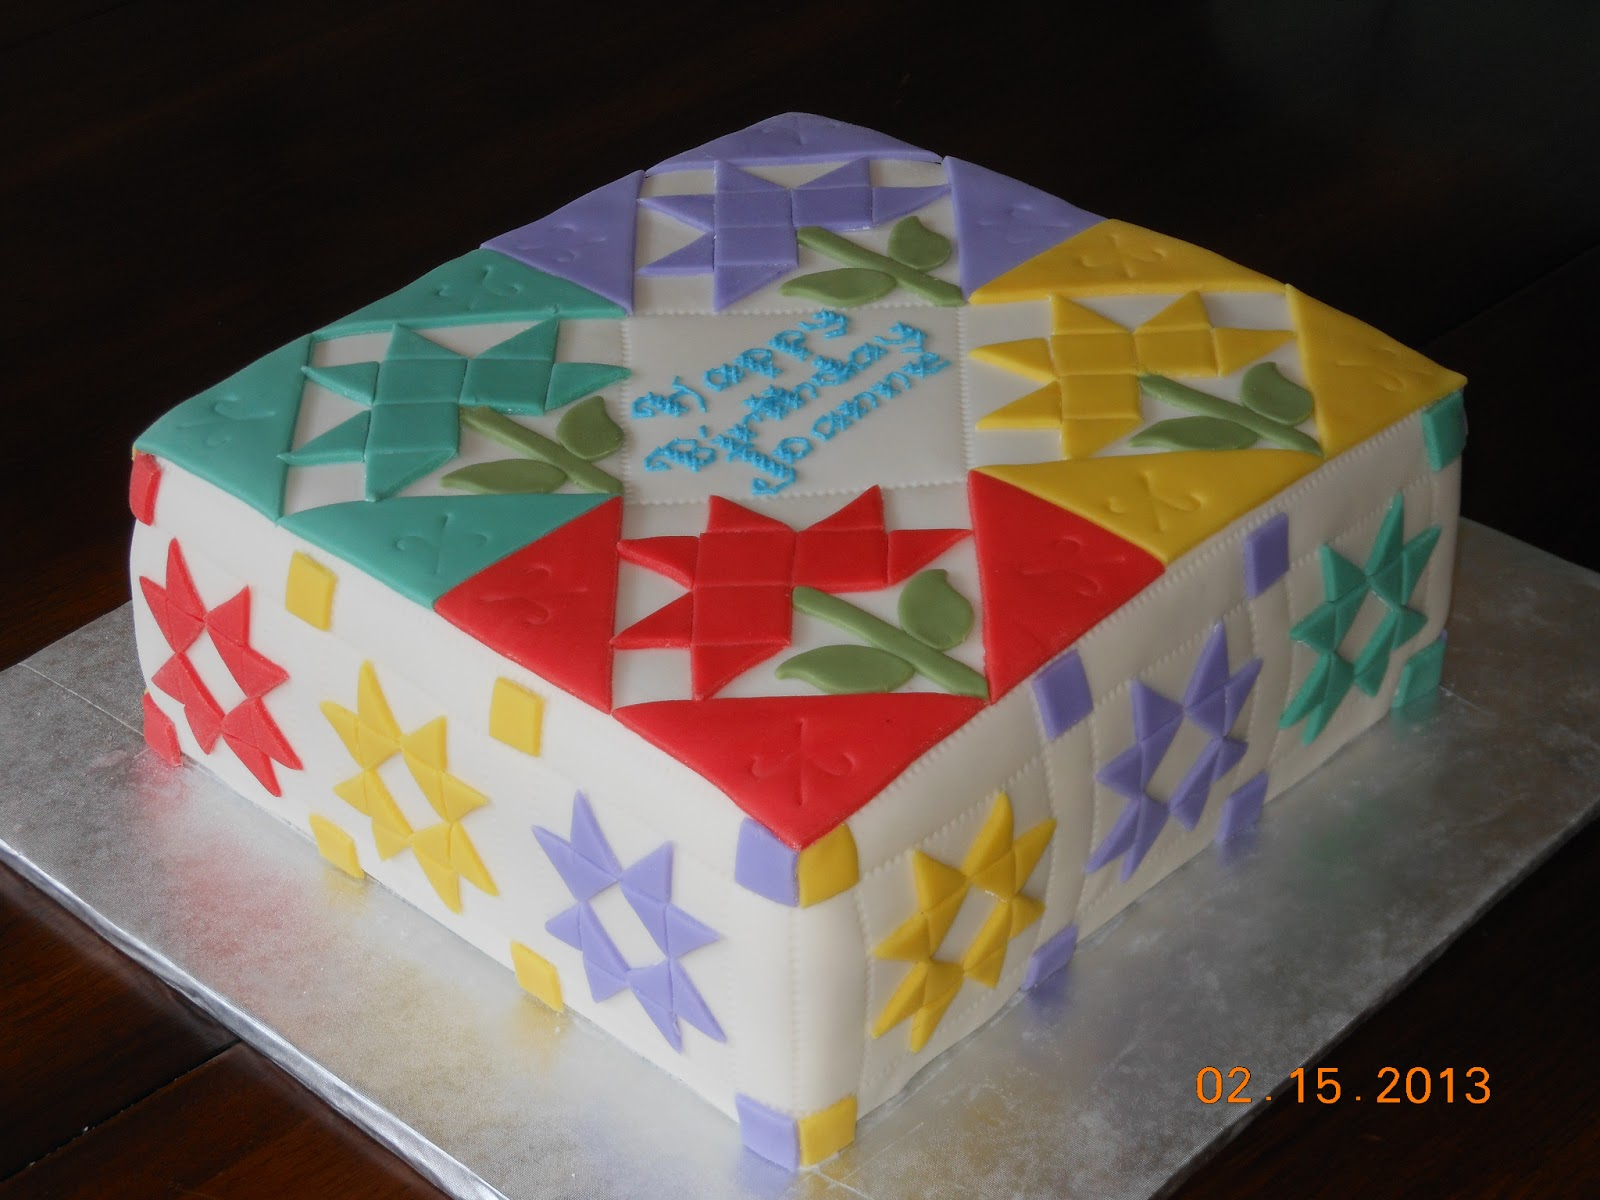 Cake Decorating Quilt Design : It s a piece of cake: Quilt Birthday Cake